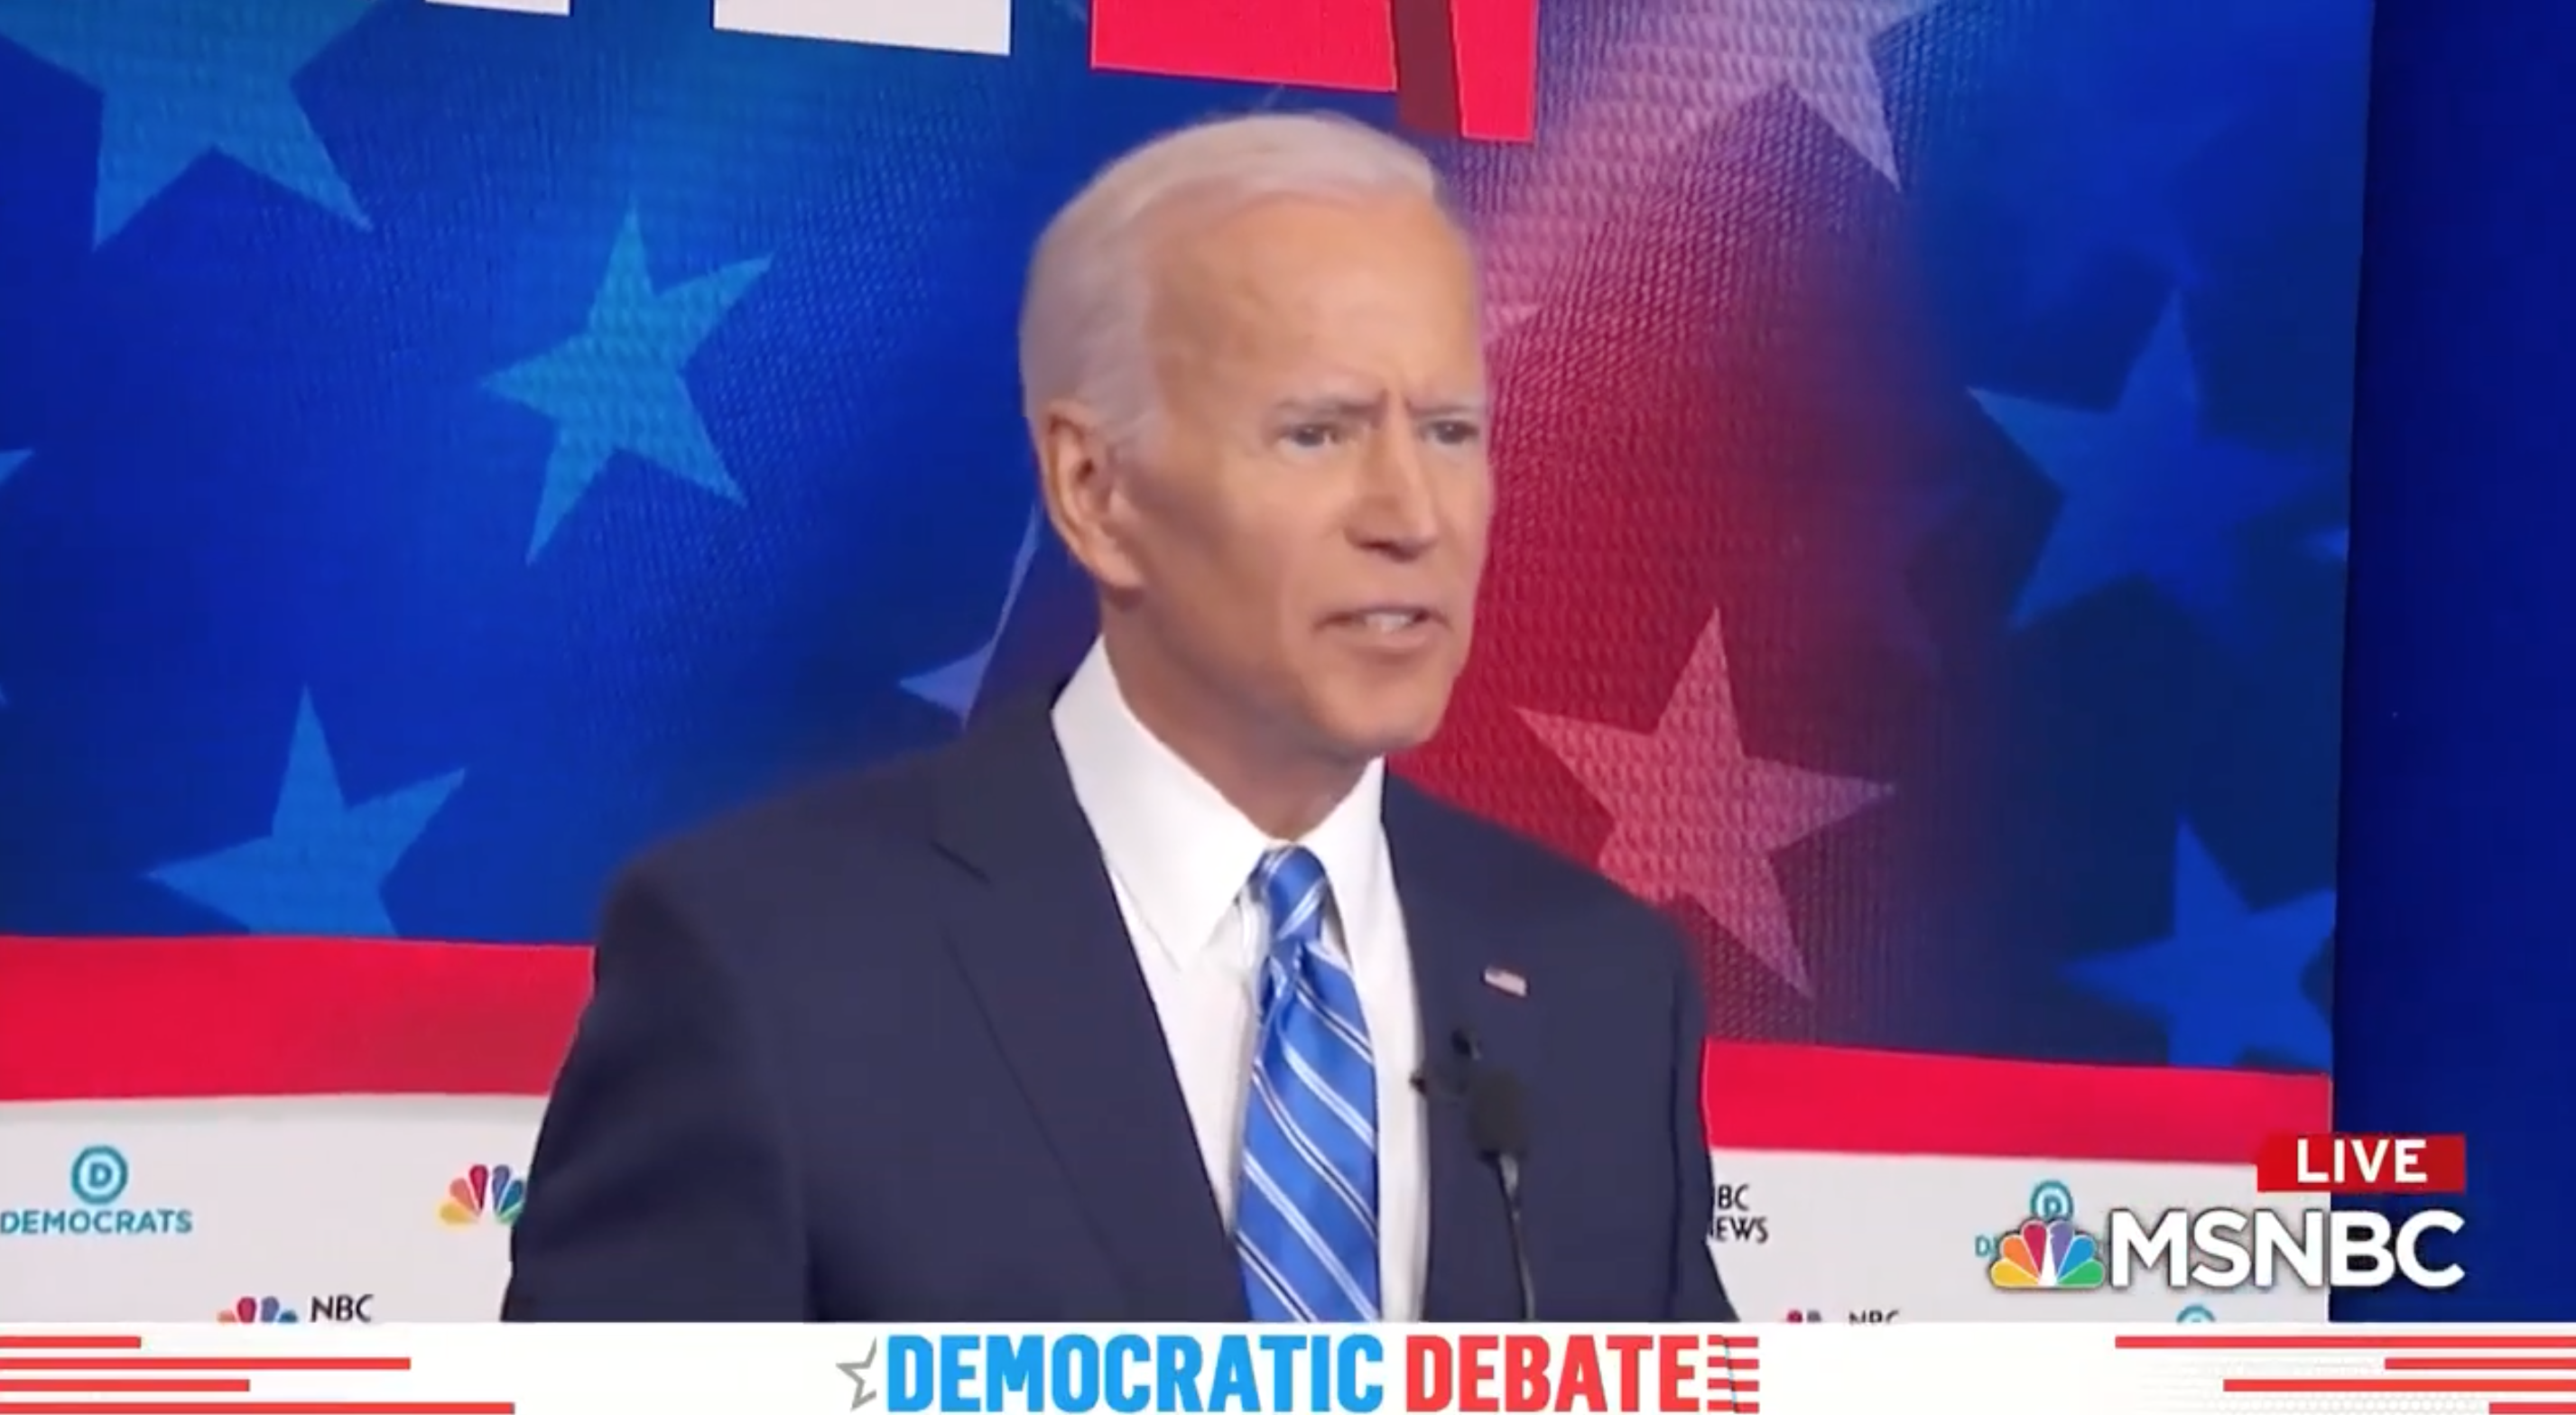 Westlake Legal Group Biden 'My time's up, I'm sorry': Biden abruptly ends answer on civil rights record after Harris pummeling Lukas Mikelionis fox-news/politics/2020-presidential-election fox-news/person/kamala-harris fox-news/person/joe-biden fox news fnc/politics fnc c487efb0-b160-52e9-948d-ce2f43541c0b article